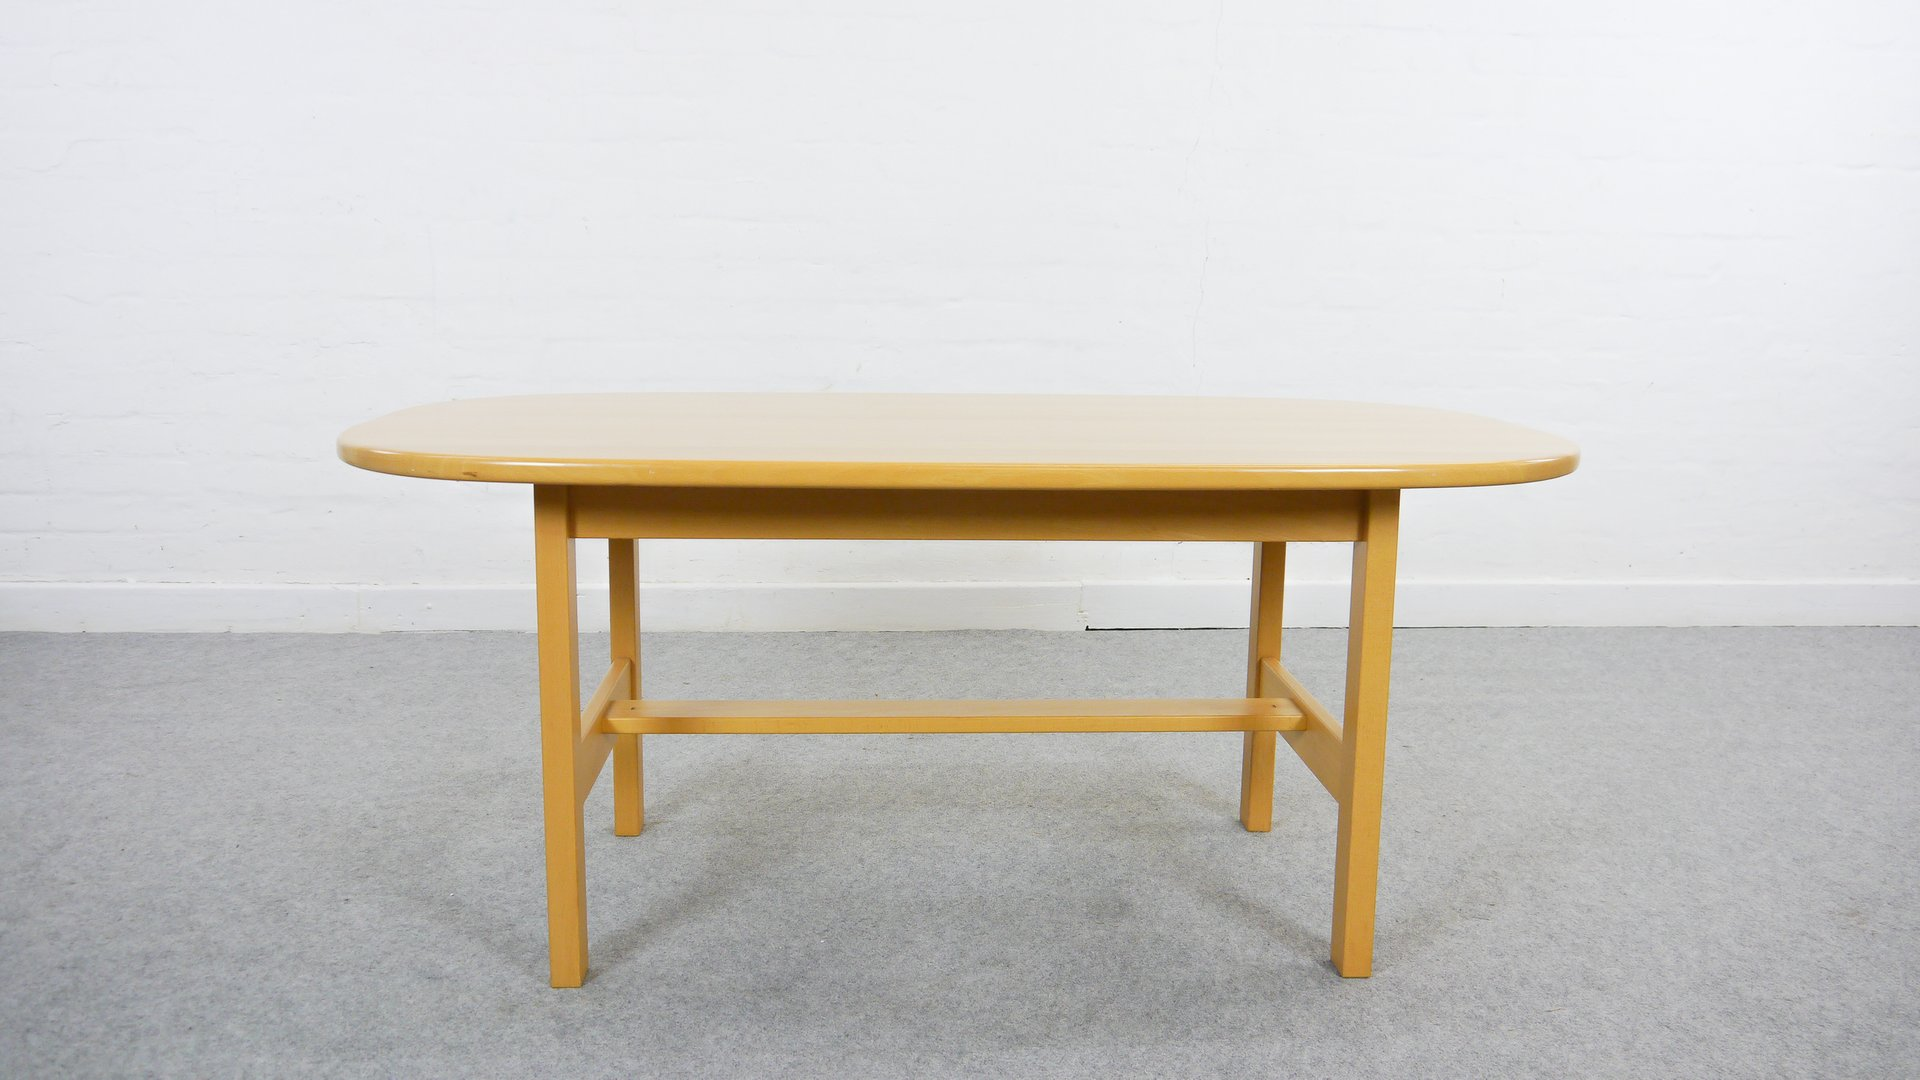 Vintage BoatShaped Coffee Table by Yngve Ekstrm for Swedese for